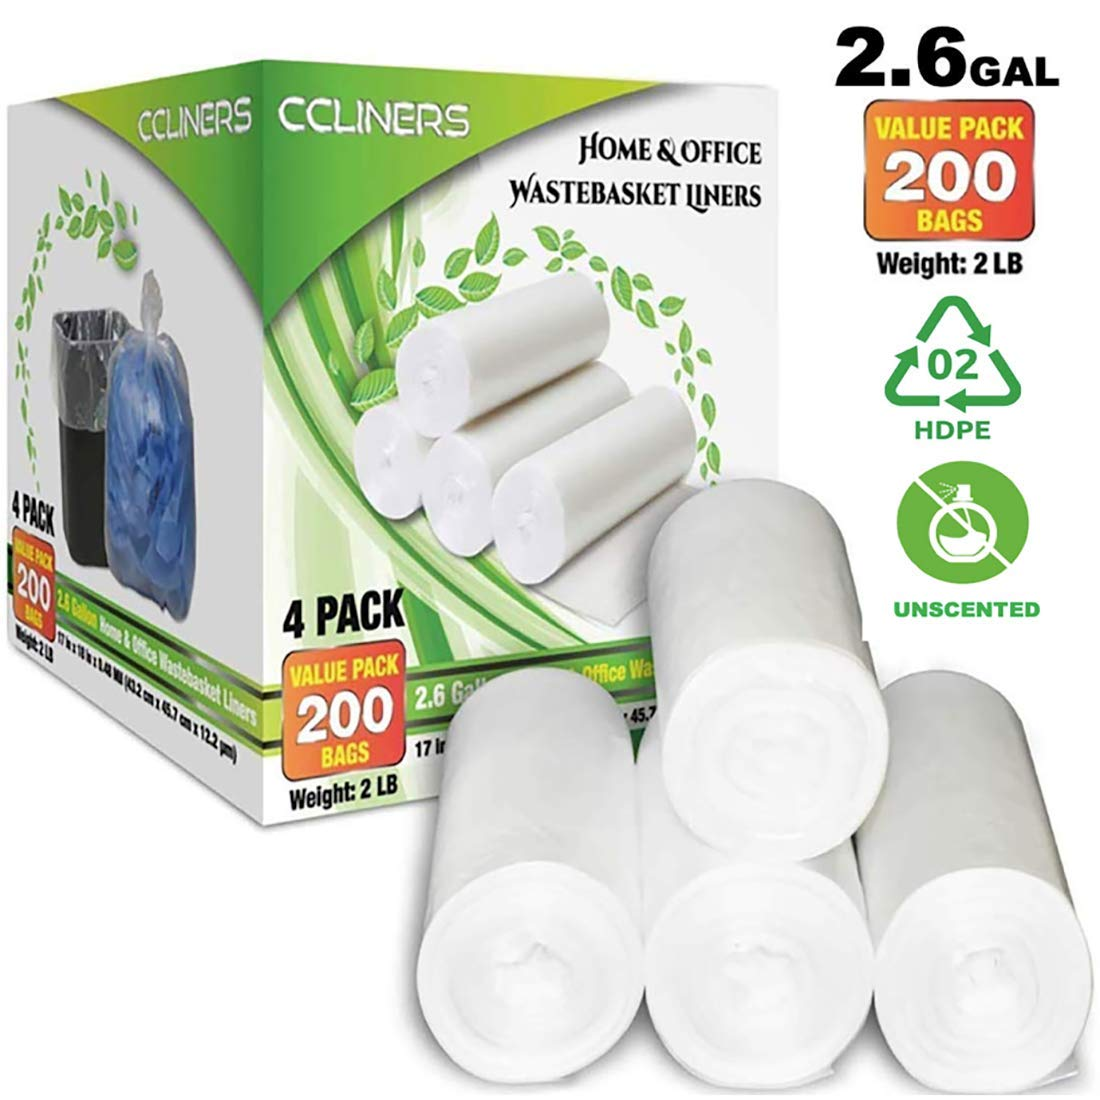 2.6 Gallon Clear Small Trash Bags Bathroom Garbage Bags 10 Liter Plastic Wastebasket Trash Can Liners for Home and Office Bins, 200 Count